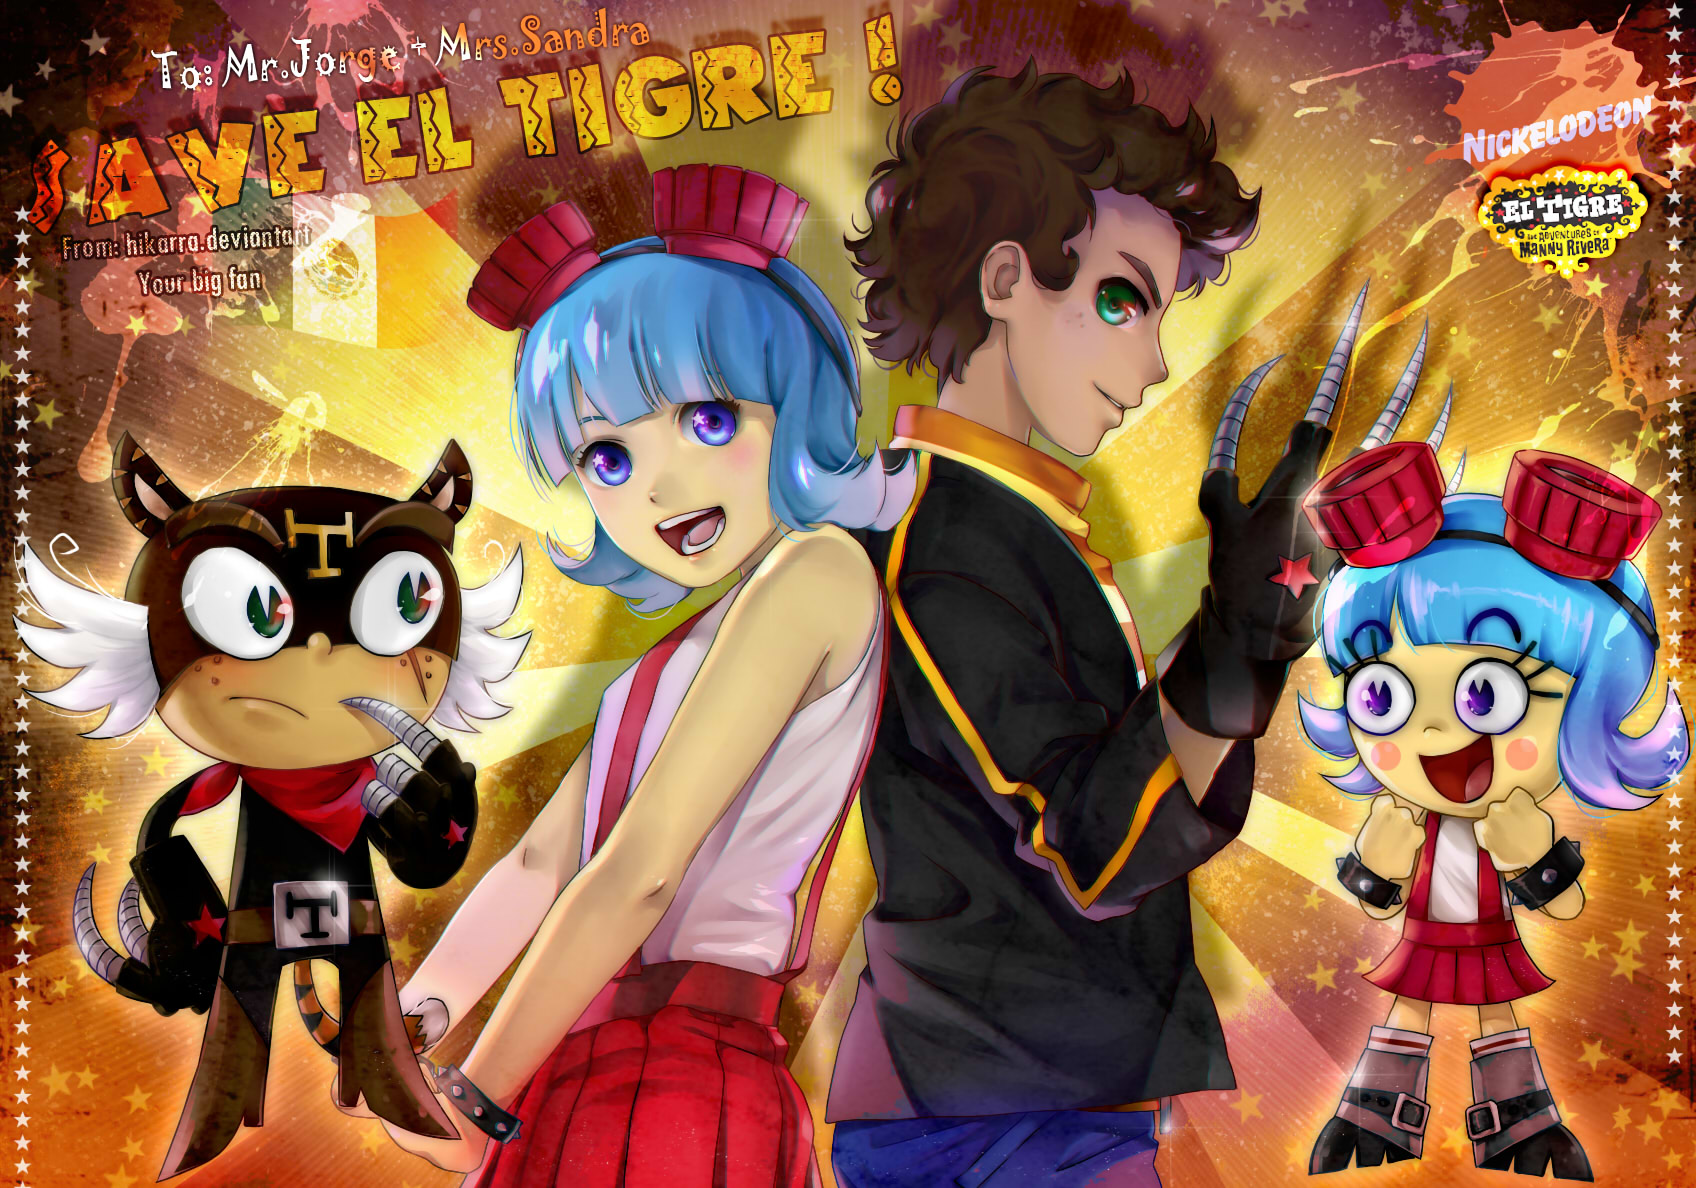 Tags Anime Hikarra Nickelodeon Mexican DeviantART Pixiv